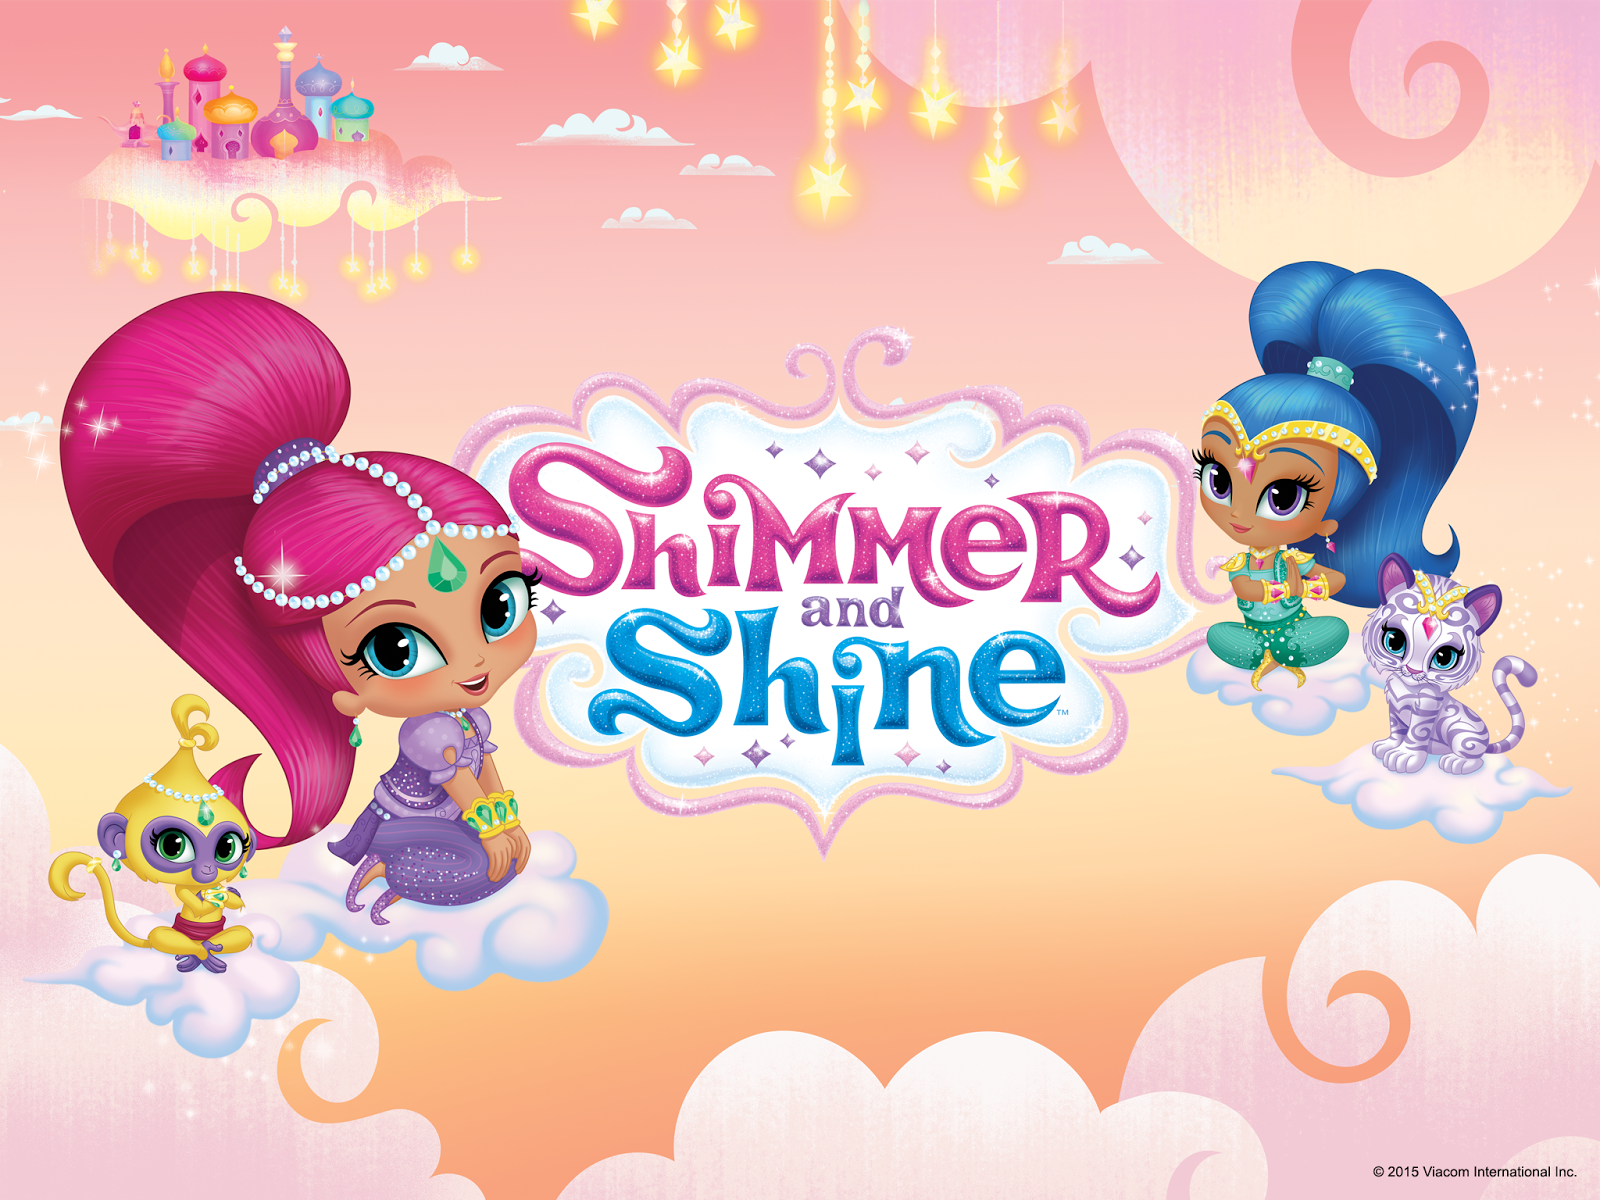 Shimmer And Shine Png Images, png collections at sccpre.cat.